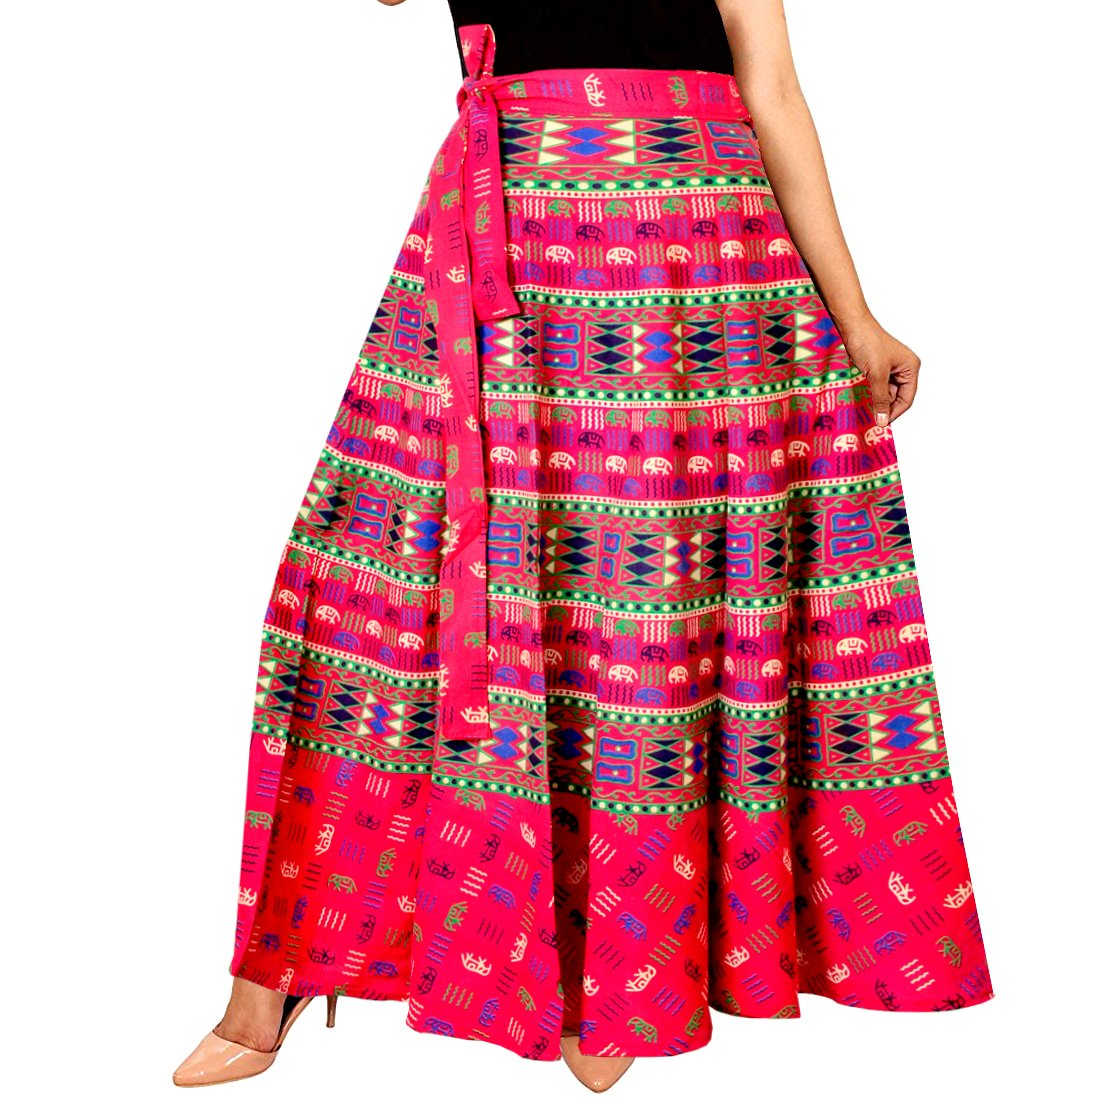 Mudrika Women's Cotton Jaipuri Rajasthani Full Long Skirt (SK_5333, Free Size, Multicolour)